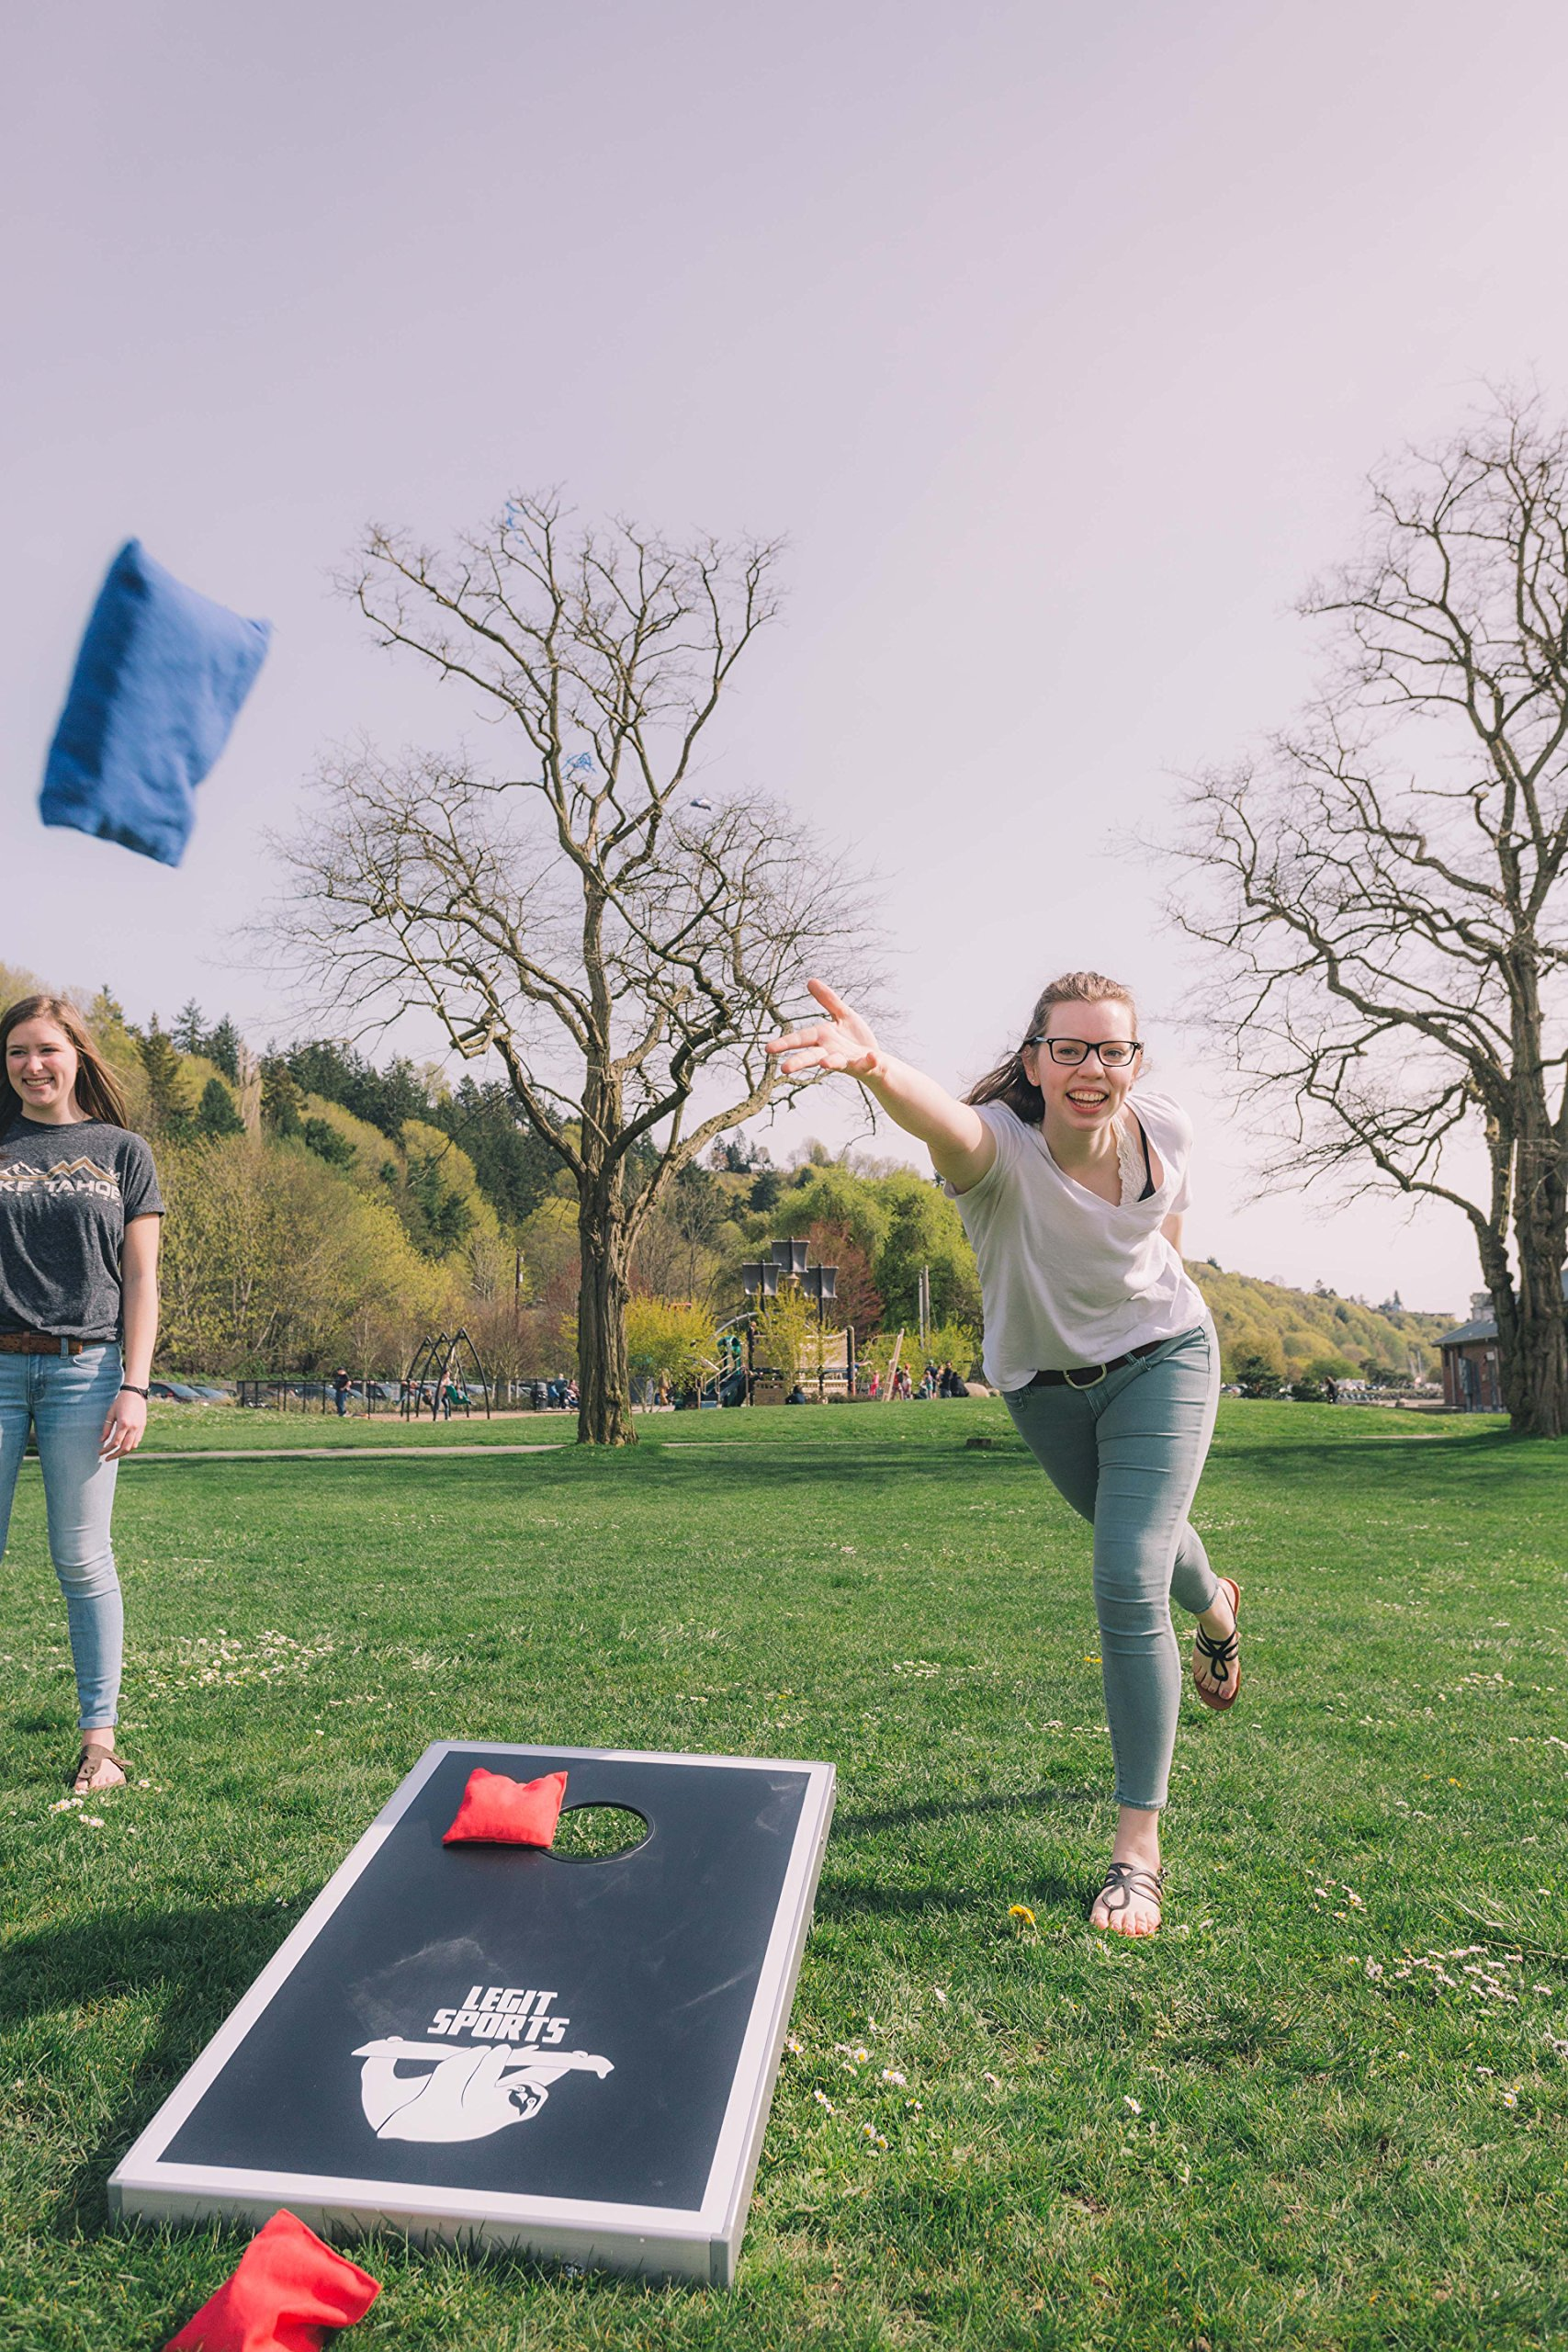 Cornhole Boards with Aluminum Frame by Legit Sports | Bean Bag Toss Corn Hole Outdoor Game with Weighted Bean Bags | Lightweight and Durable Materials | Great for Travel, Camping, Parties by Legit Camping (Image #3)